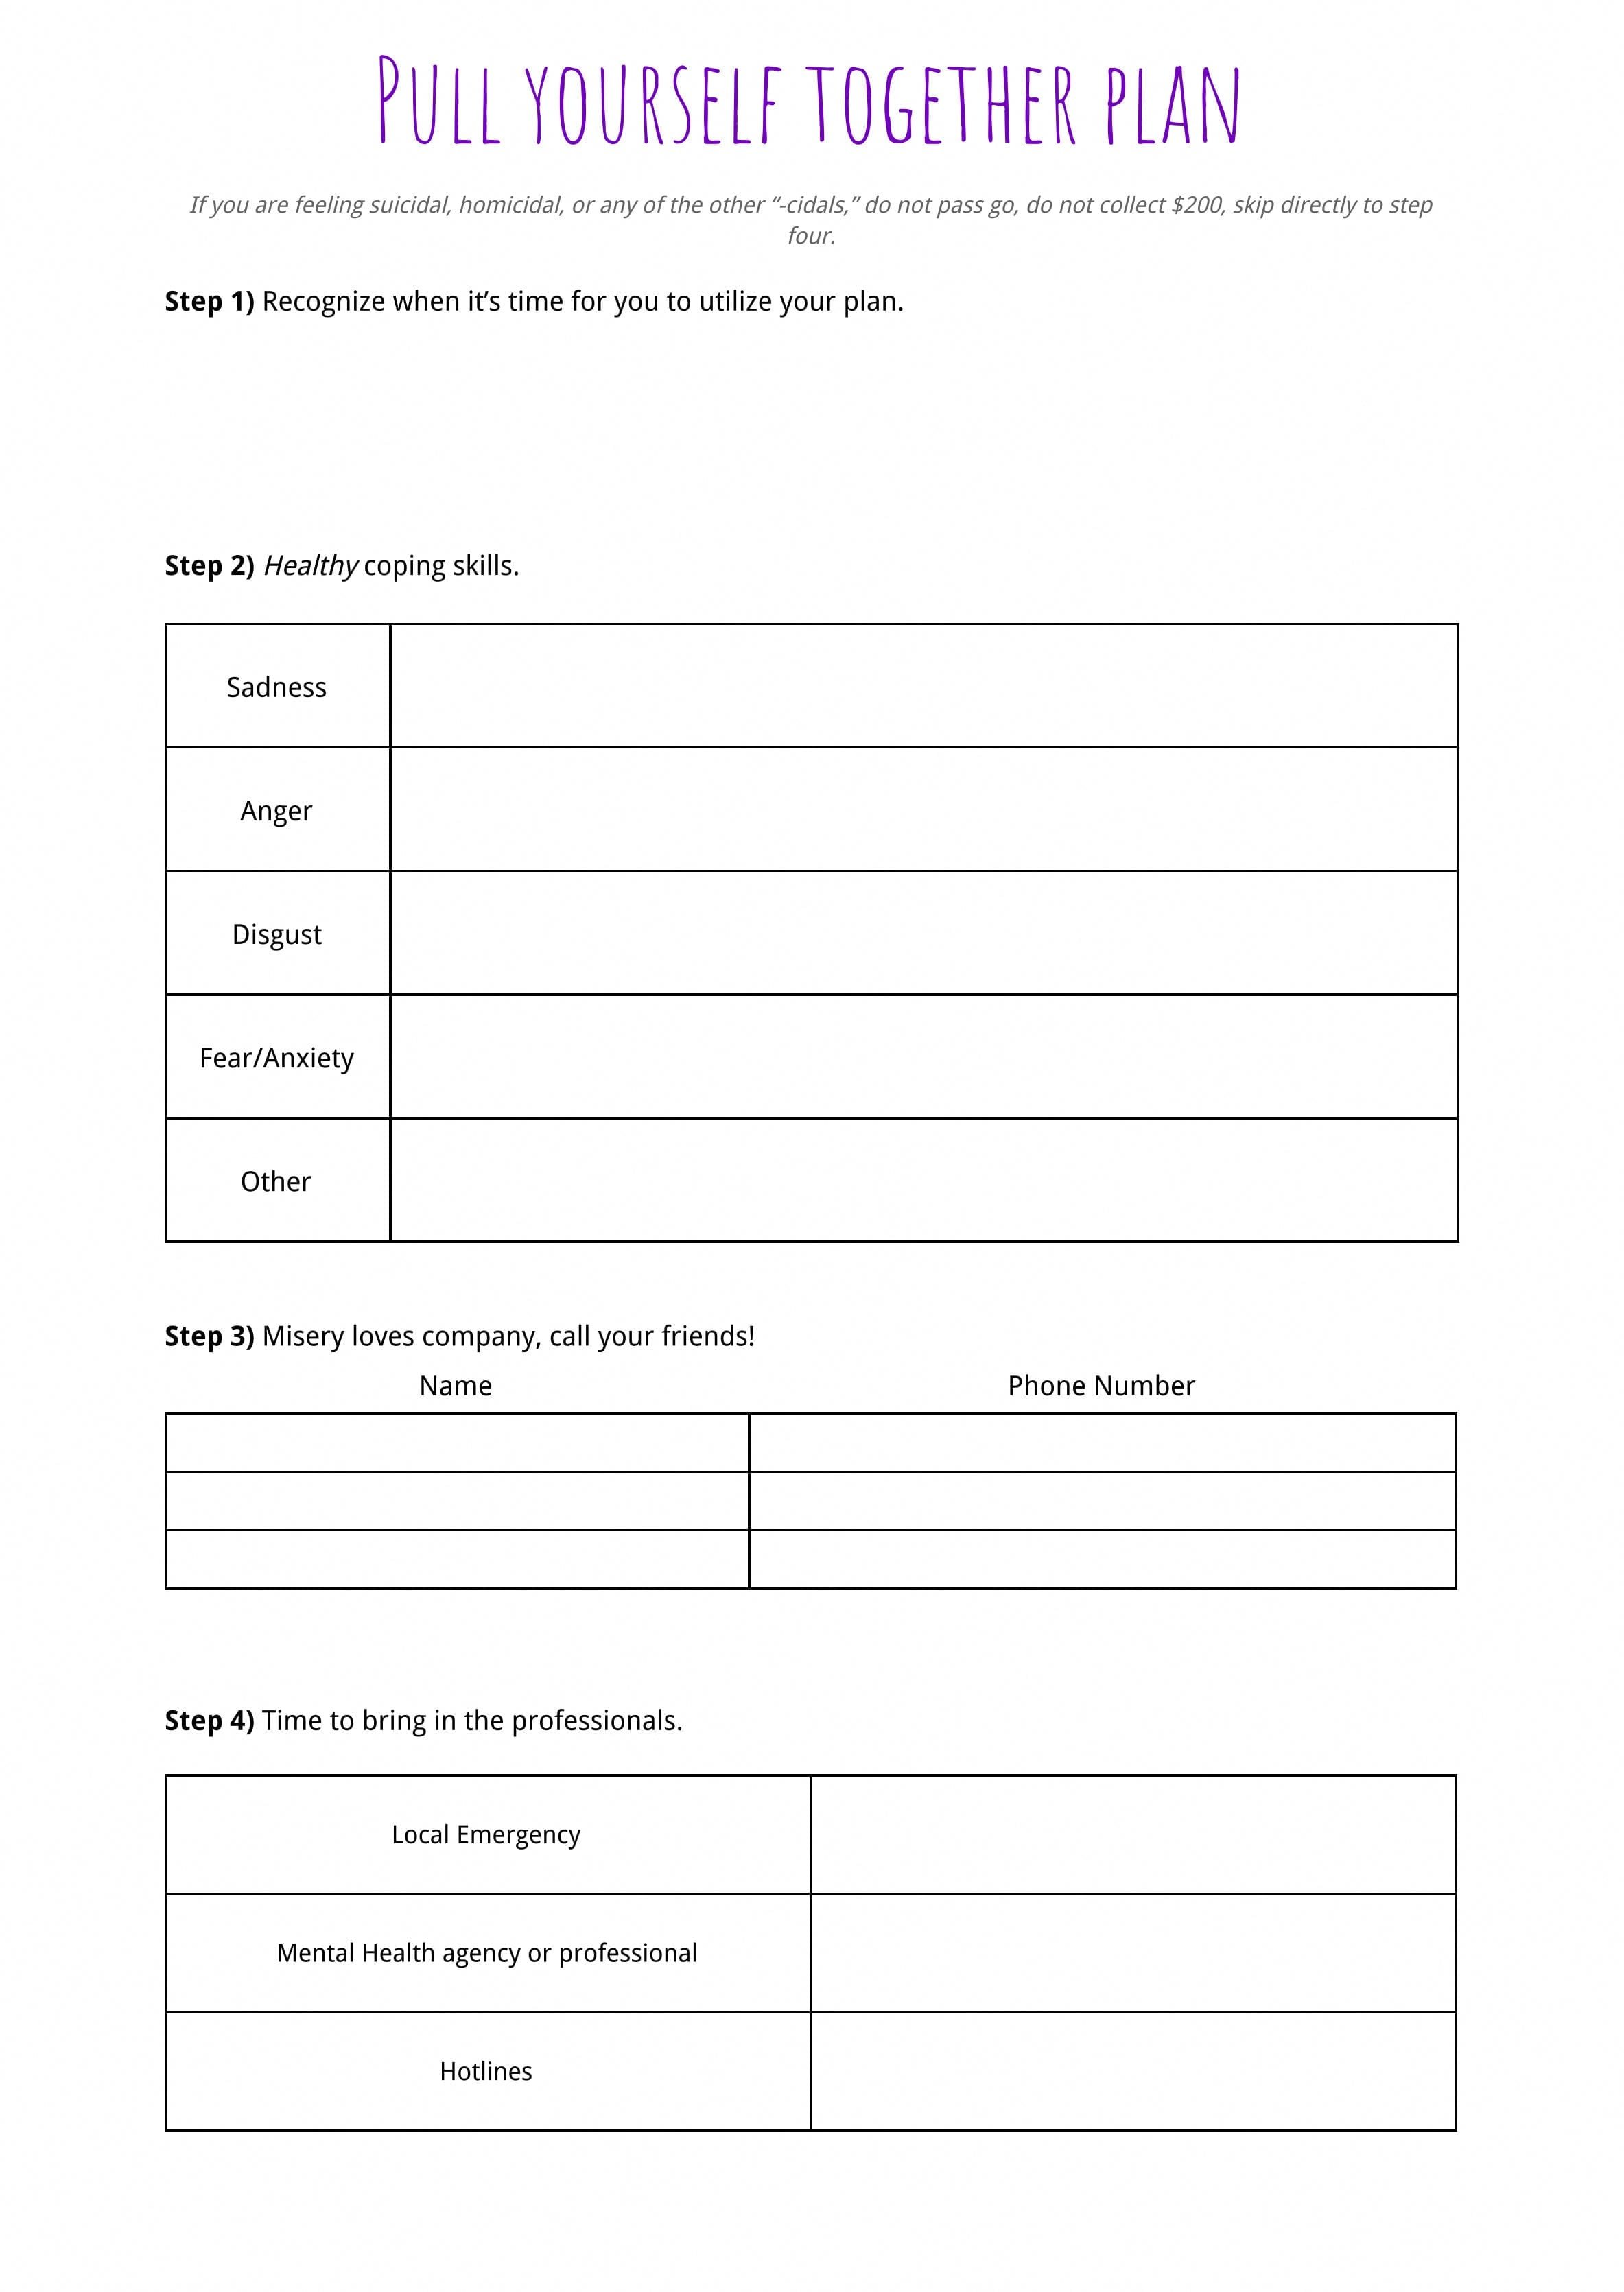 009 Plan Templates Mental Health Crisis Template Amazing Together With Crisis Prevention Plan Worksheet